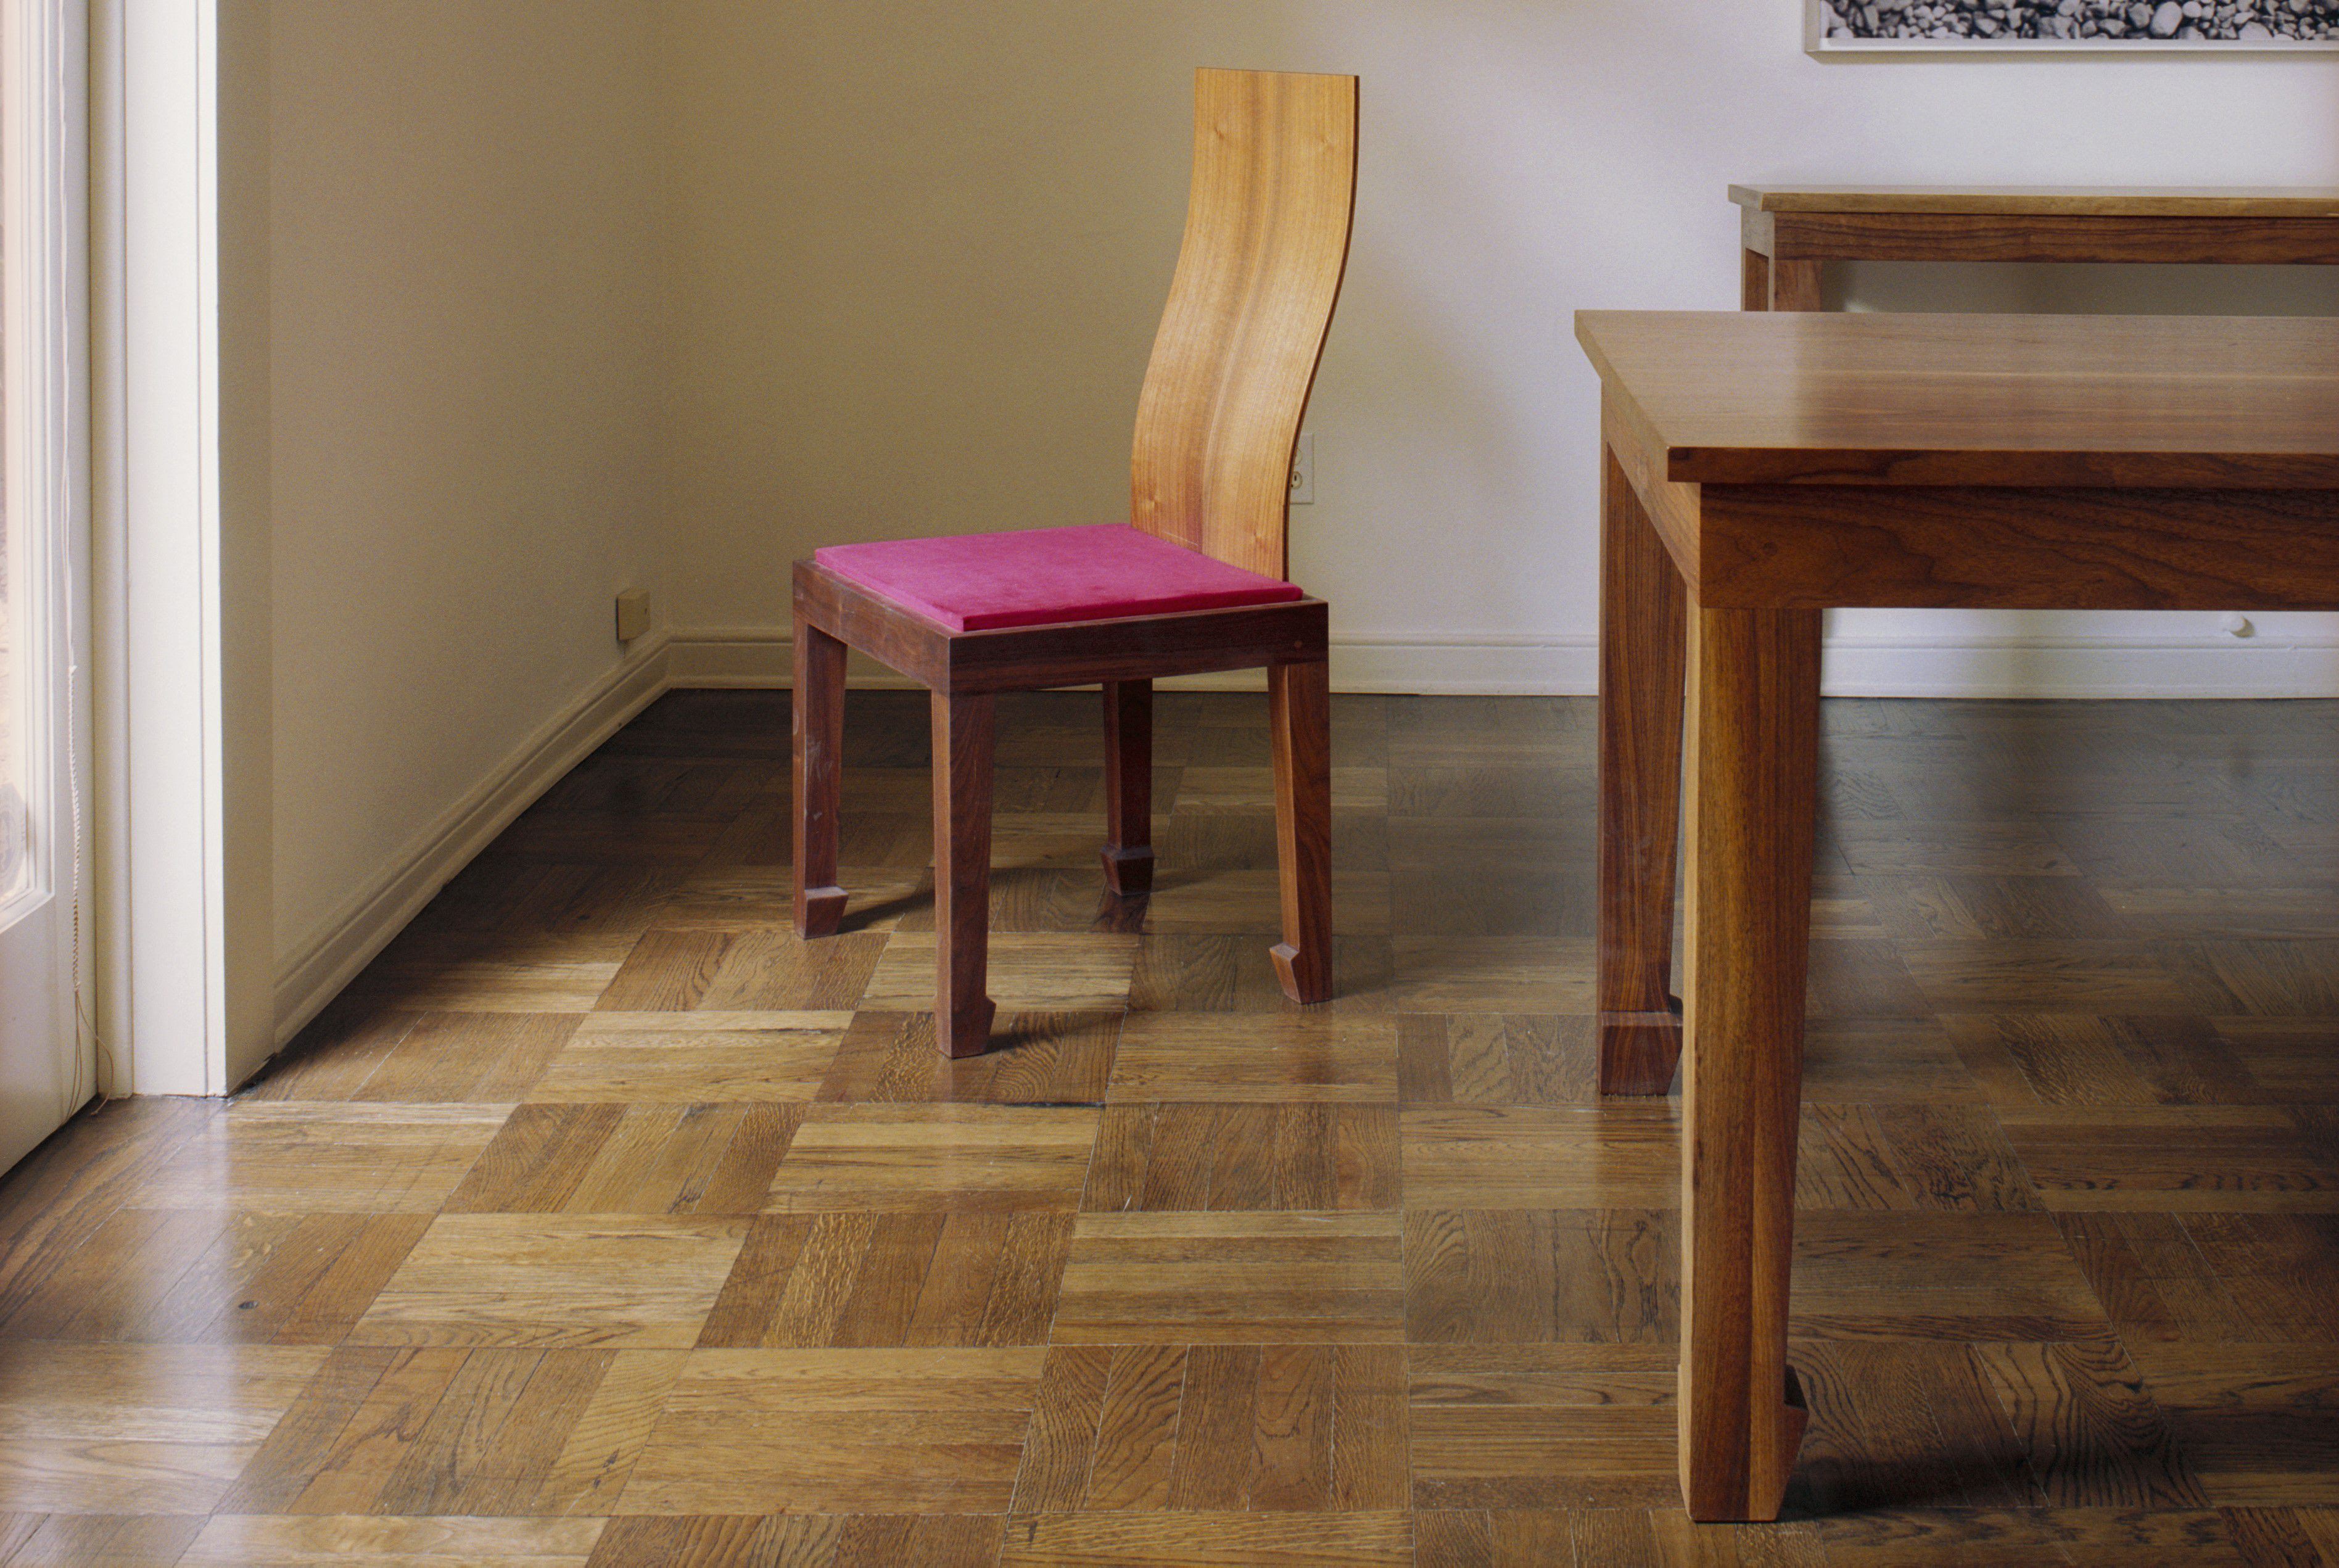 bruce oak hardwood flooring of wood parquet flooring poised for a resurgence intended for wood parquet flooring 529502452 576c78195f9b585875a1ac13